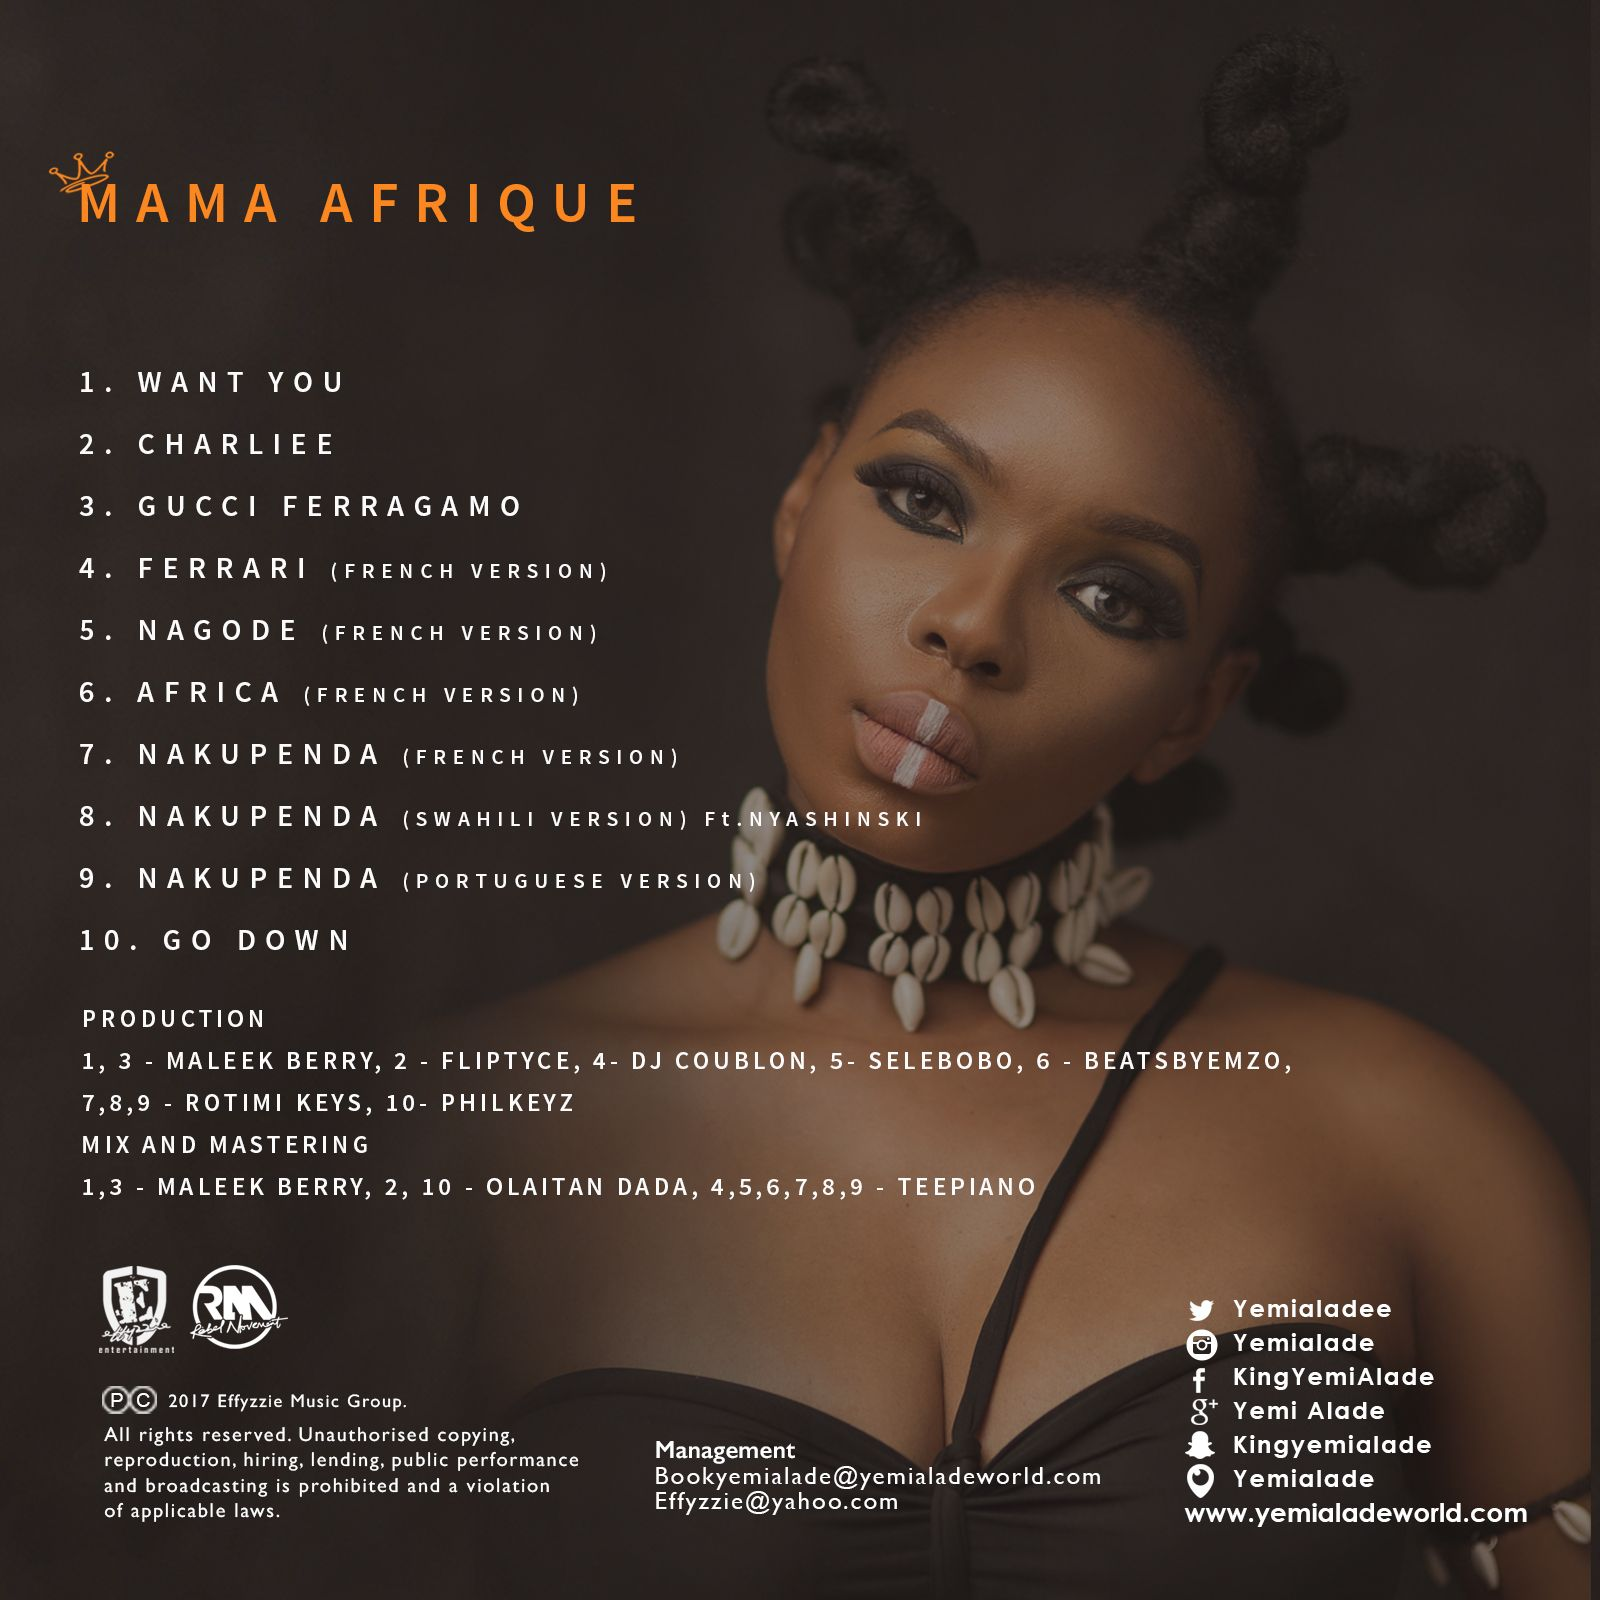 Yemi Alade - MAMA AFRIQUE (Back Artwork) | AceWorldTeam.com